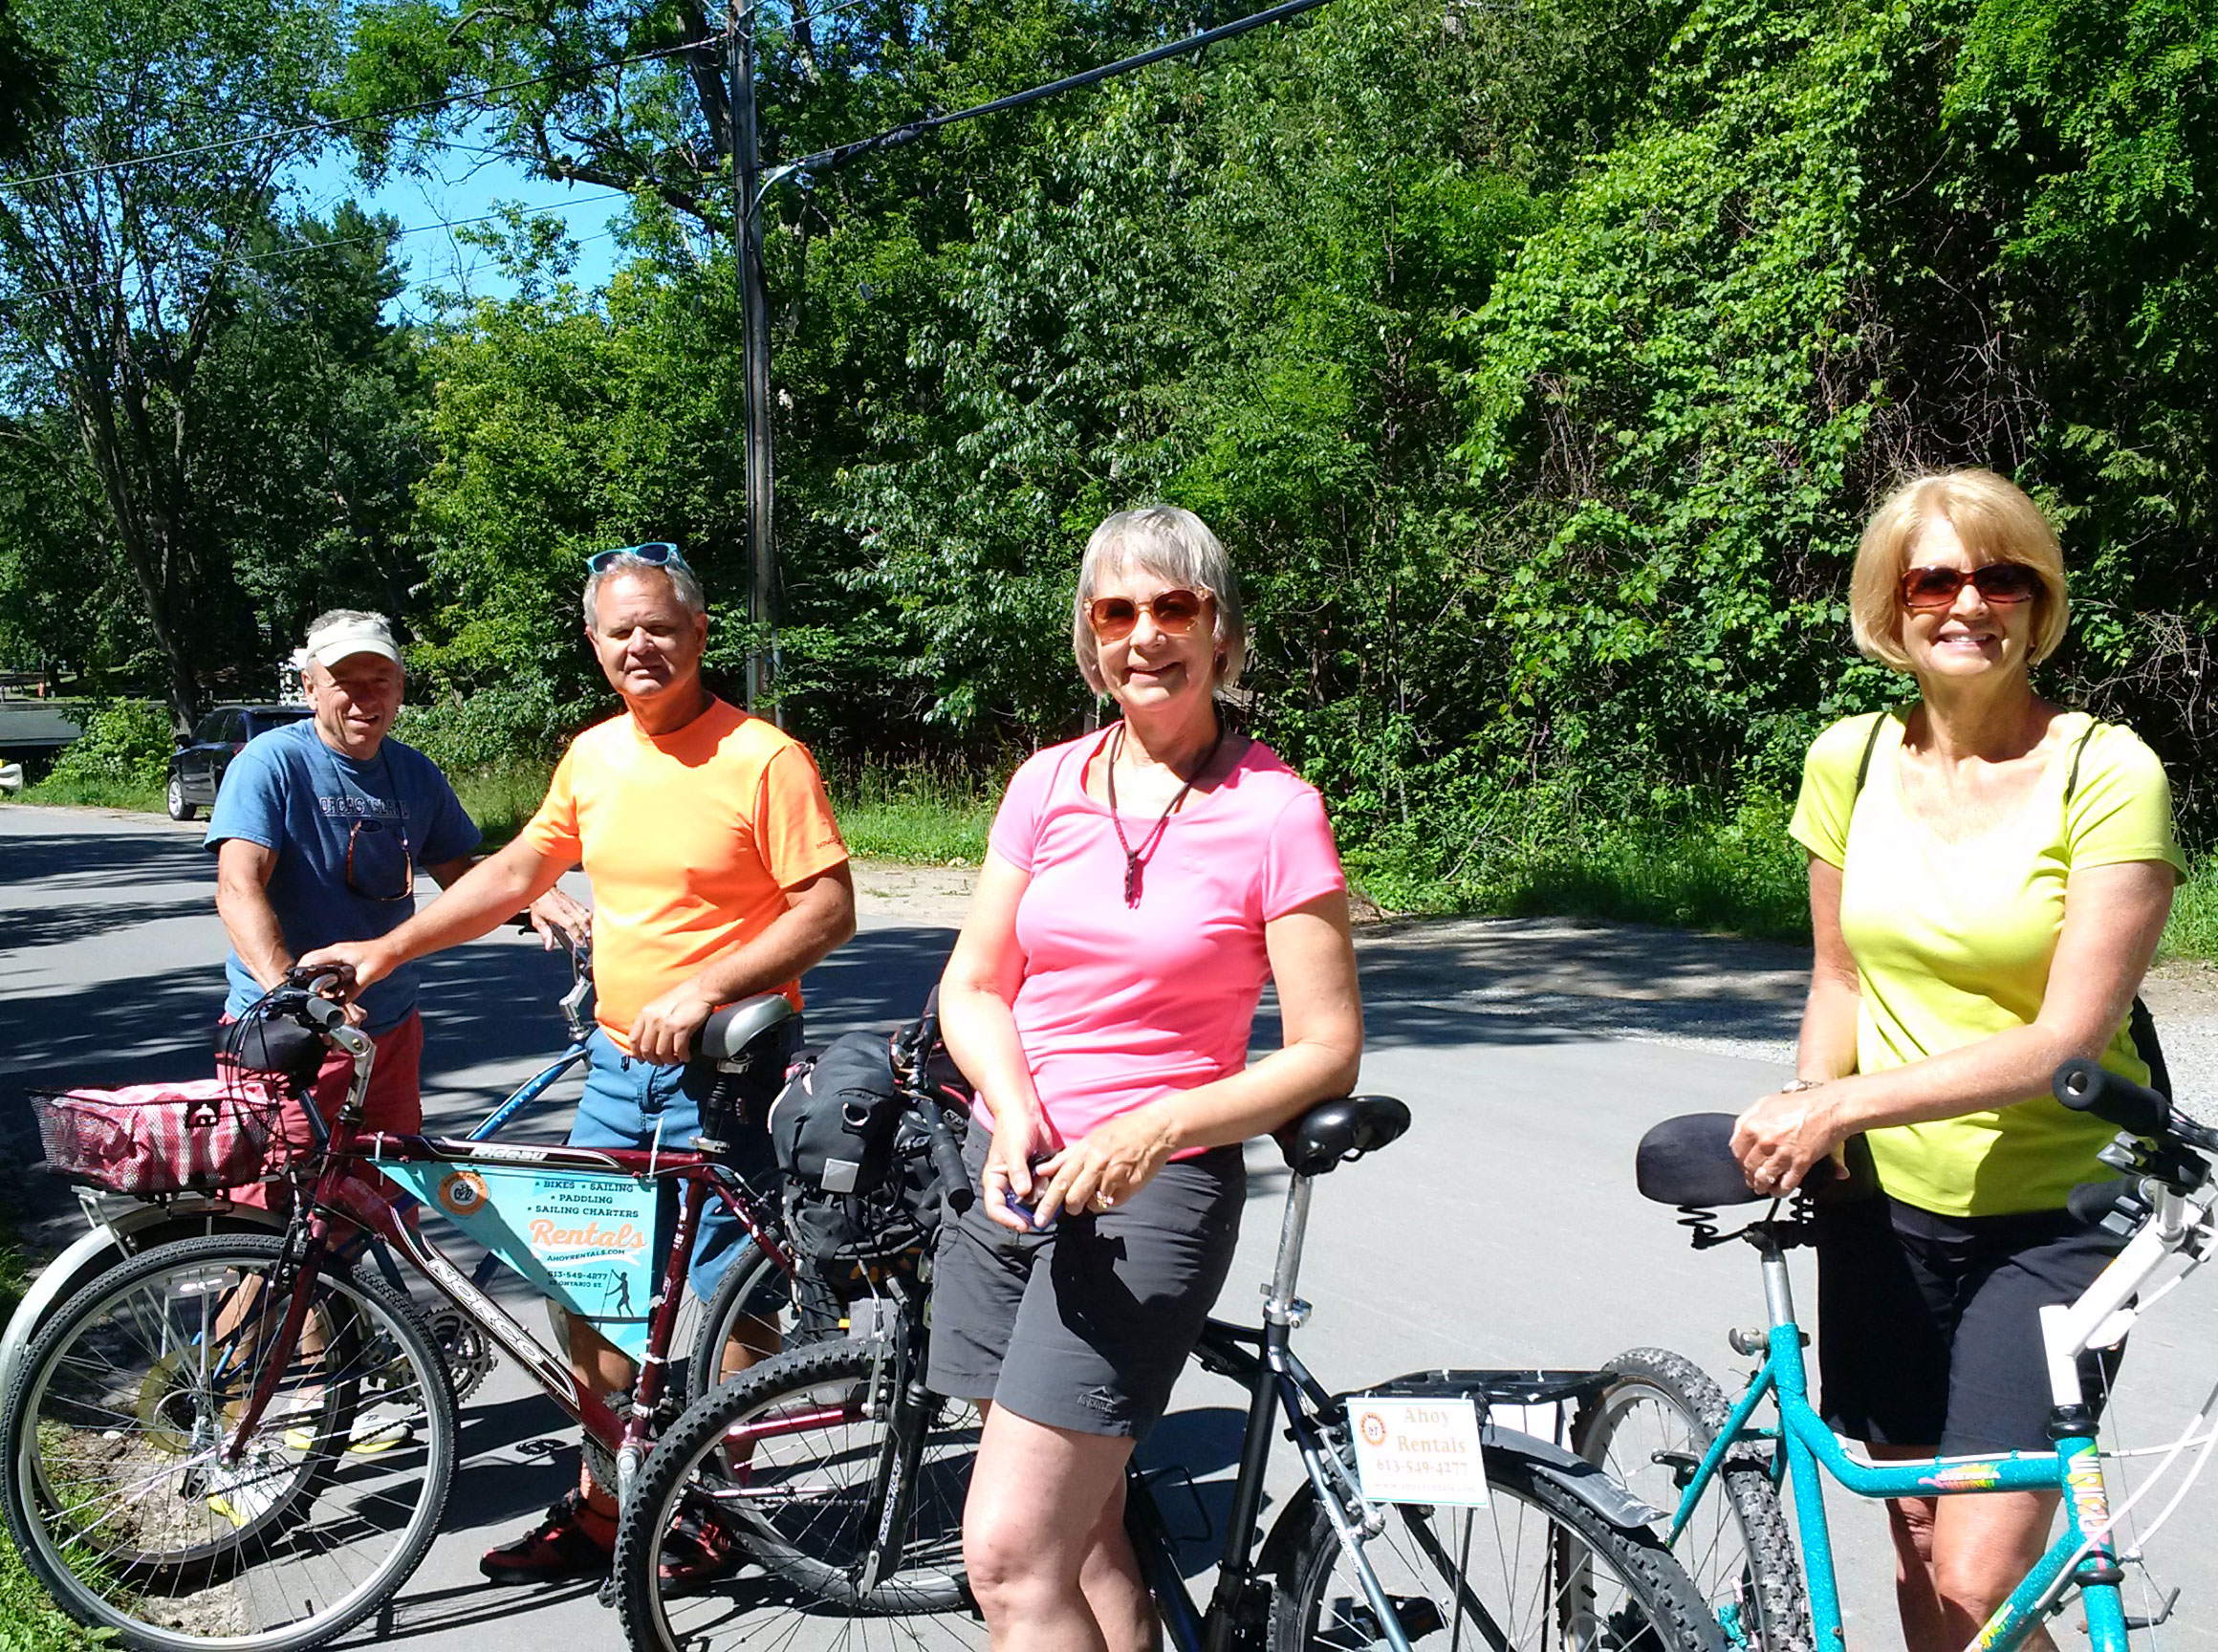 Image of a group of people with rental bikes.